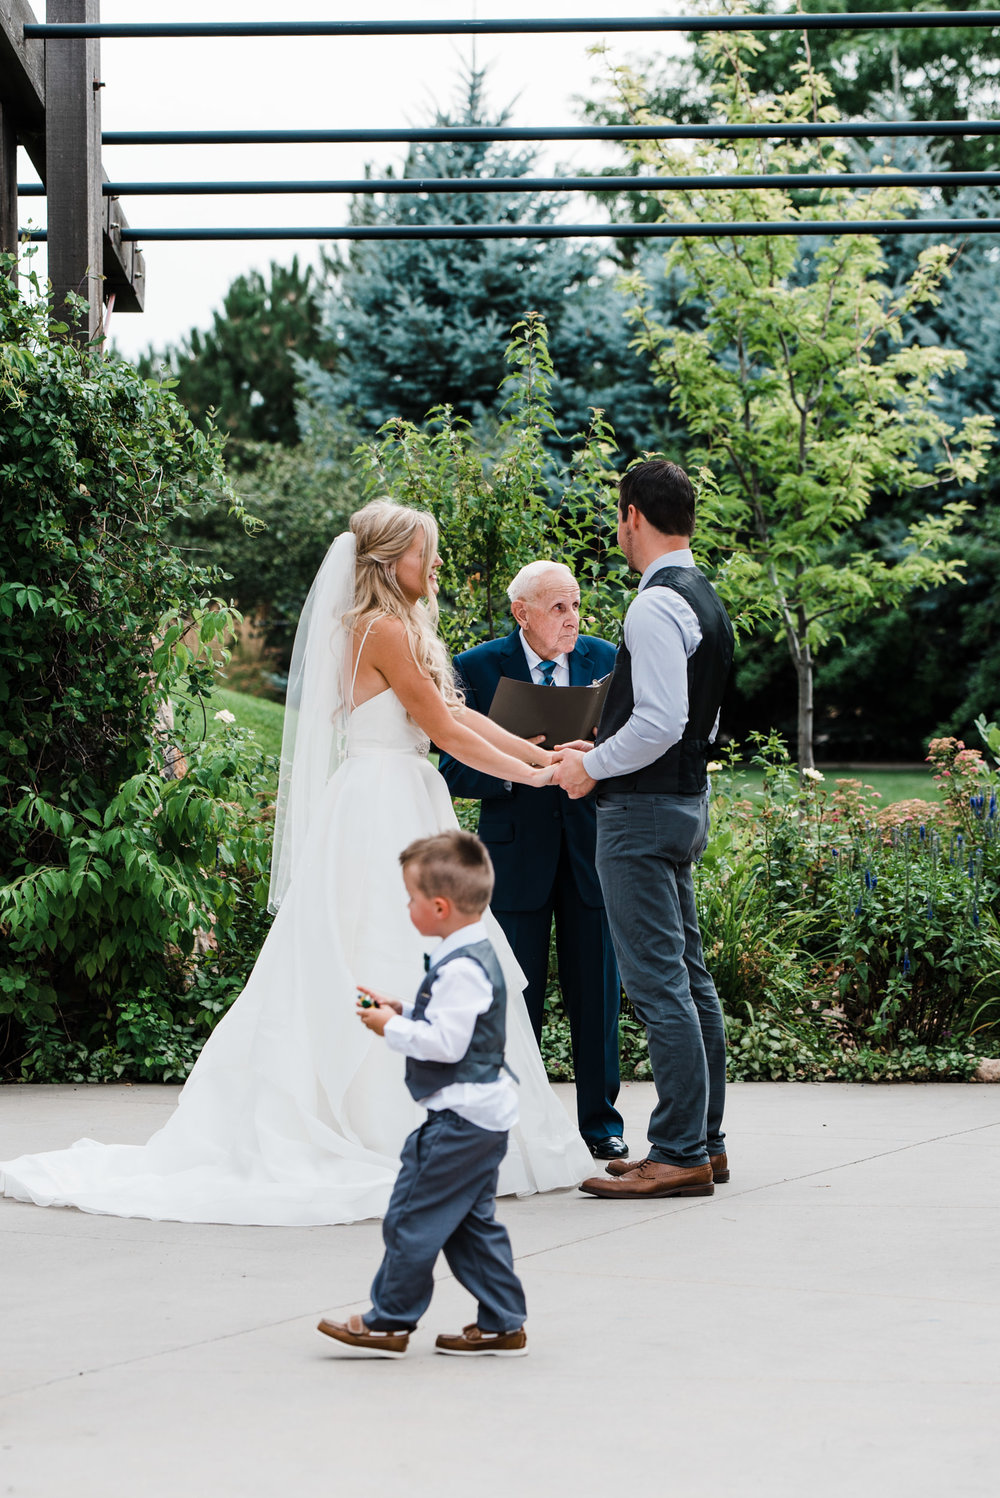 Colorado mountain wedding photographer at Brookeside Gardens wedding ceremony